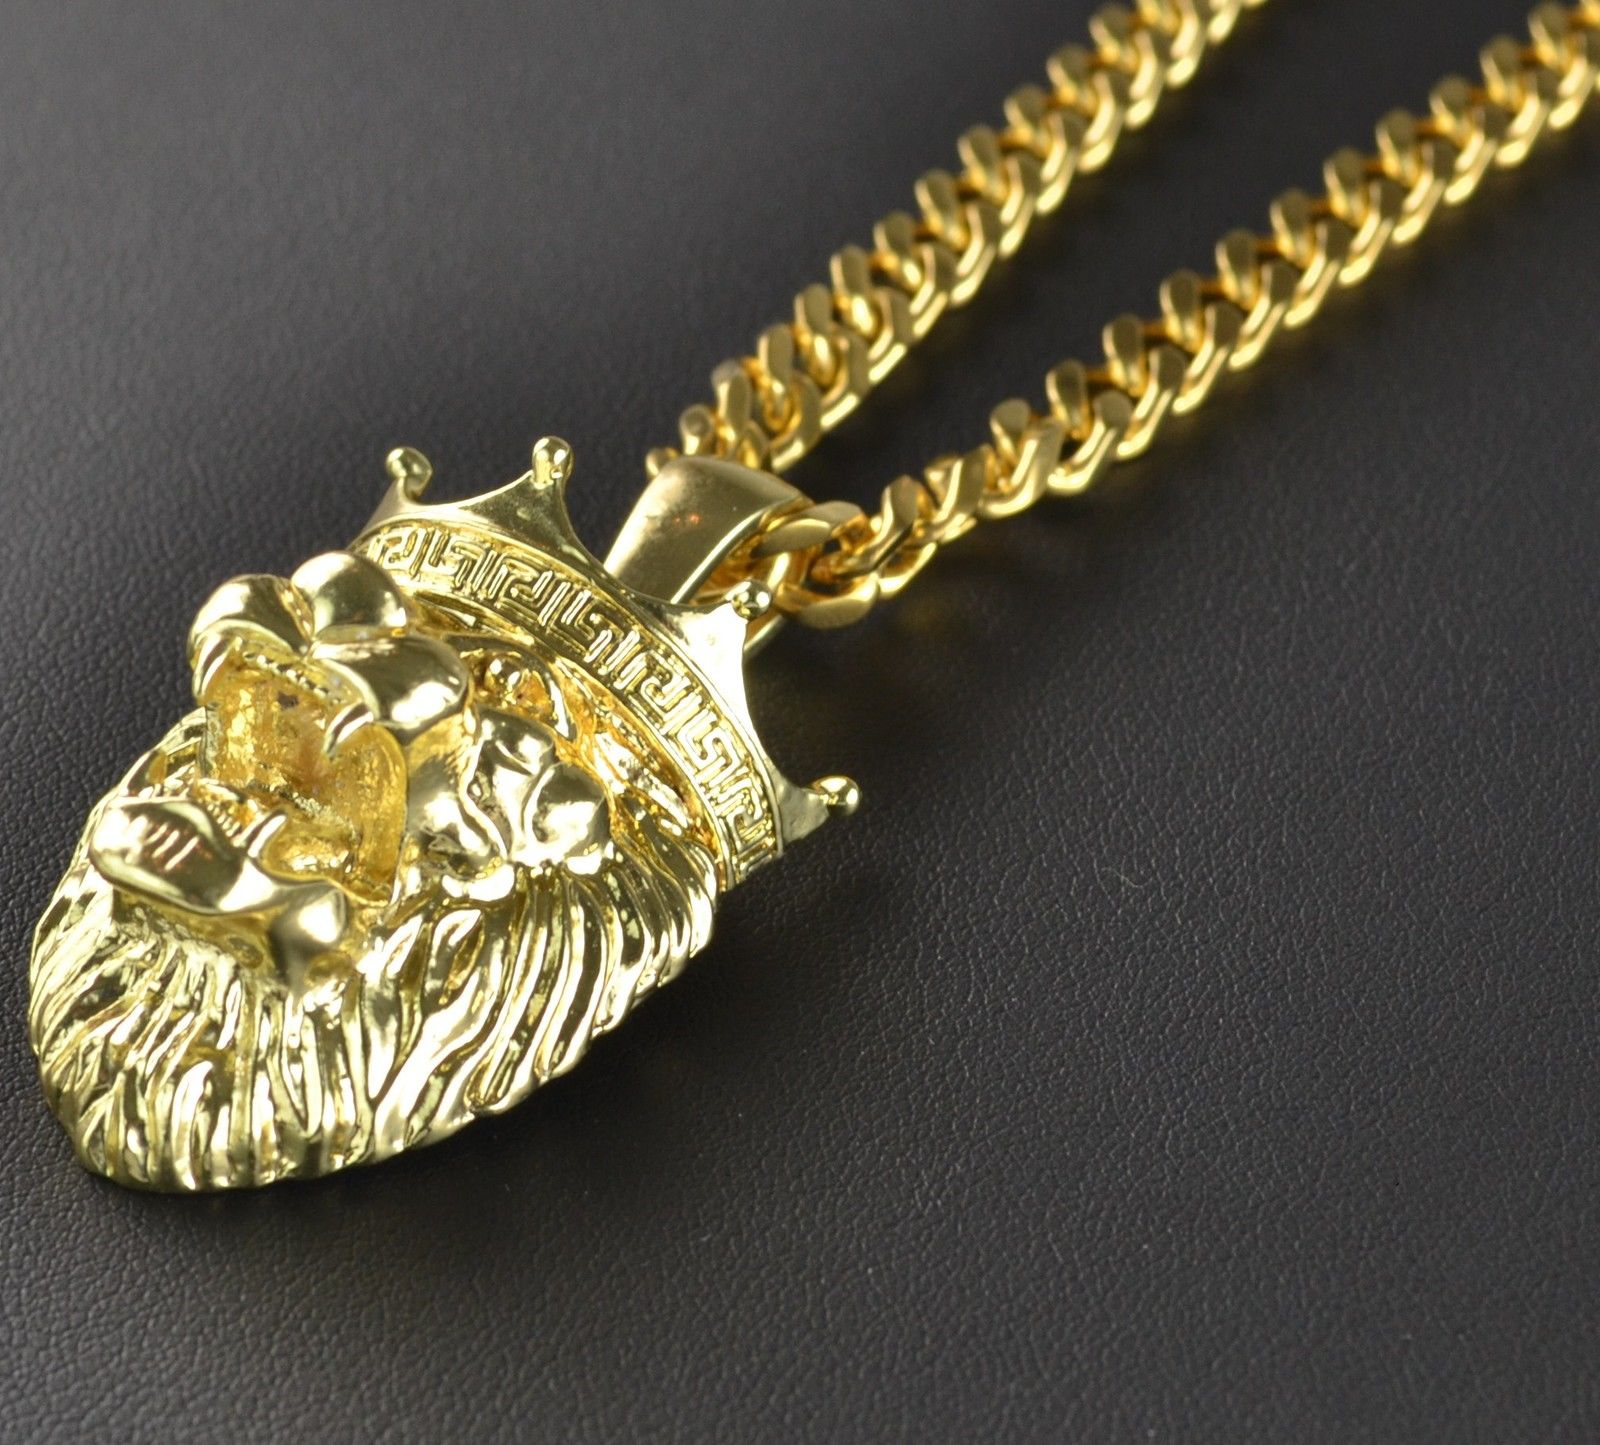 necklace for yellow back j gold lion karat pendant sale jewelry org at necklaces nemean id